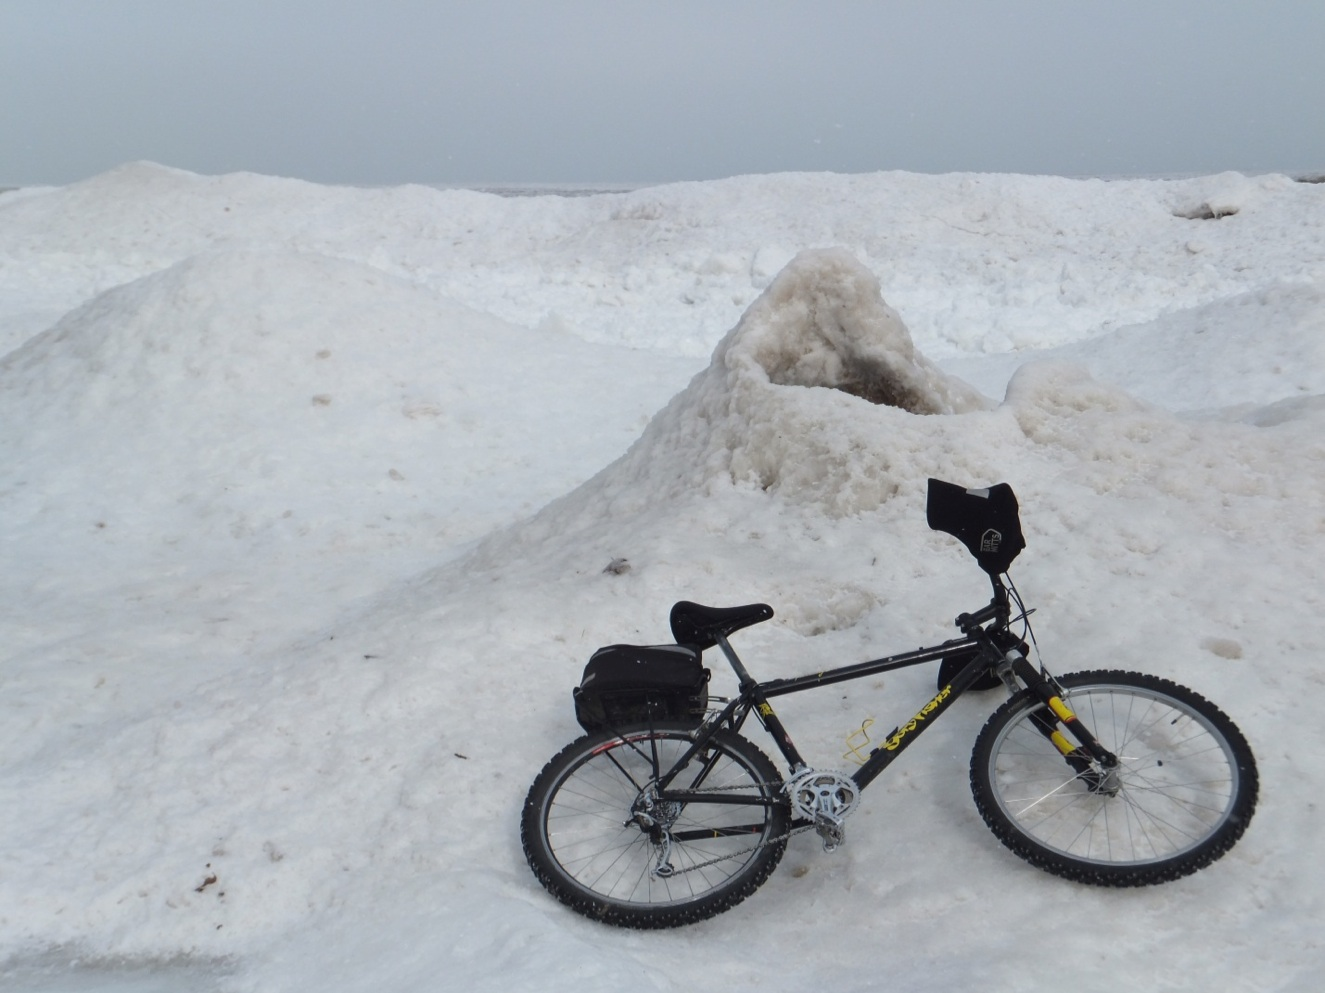 January 24, 2013, looking northeast along lakeshore, Wilmette, Illinois, Langdon Park (bike for scale)